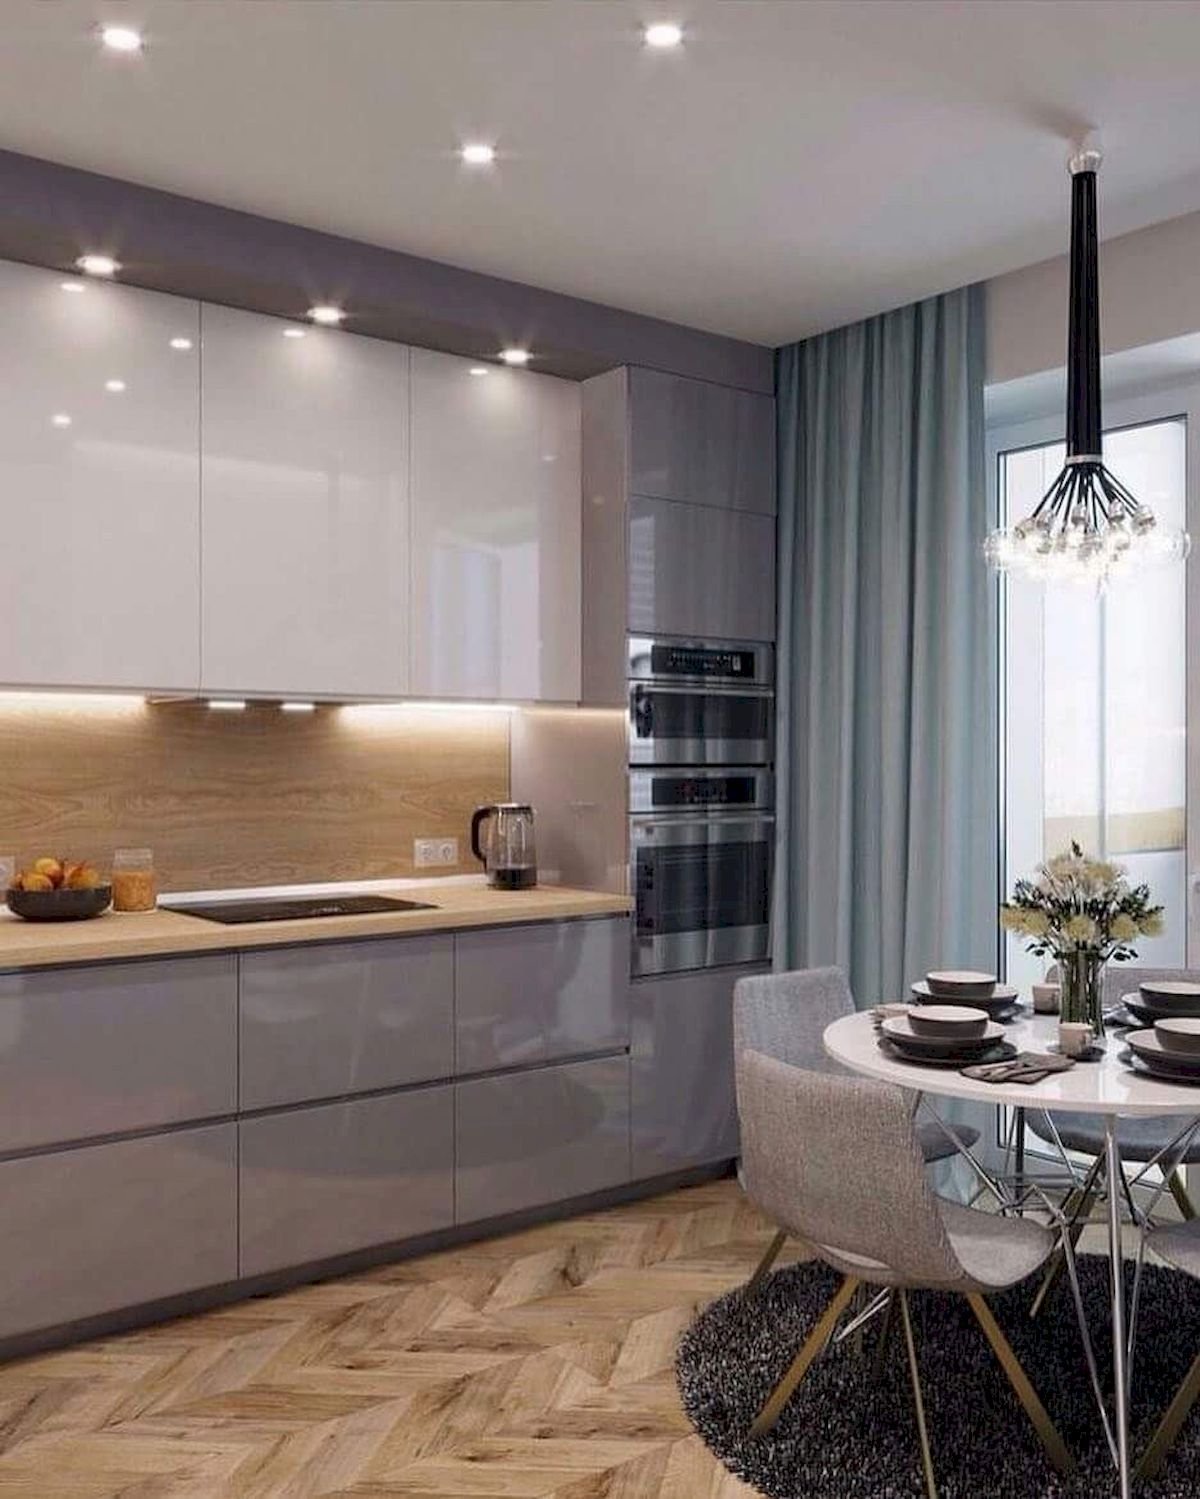 High Gloss Kitchen Island: 30+ Minimalist But Luxurious Kitchen Design